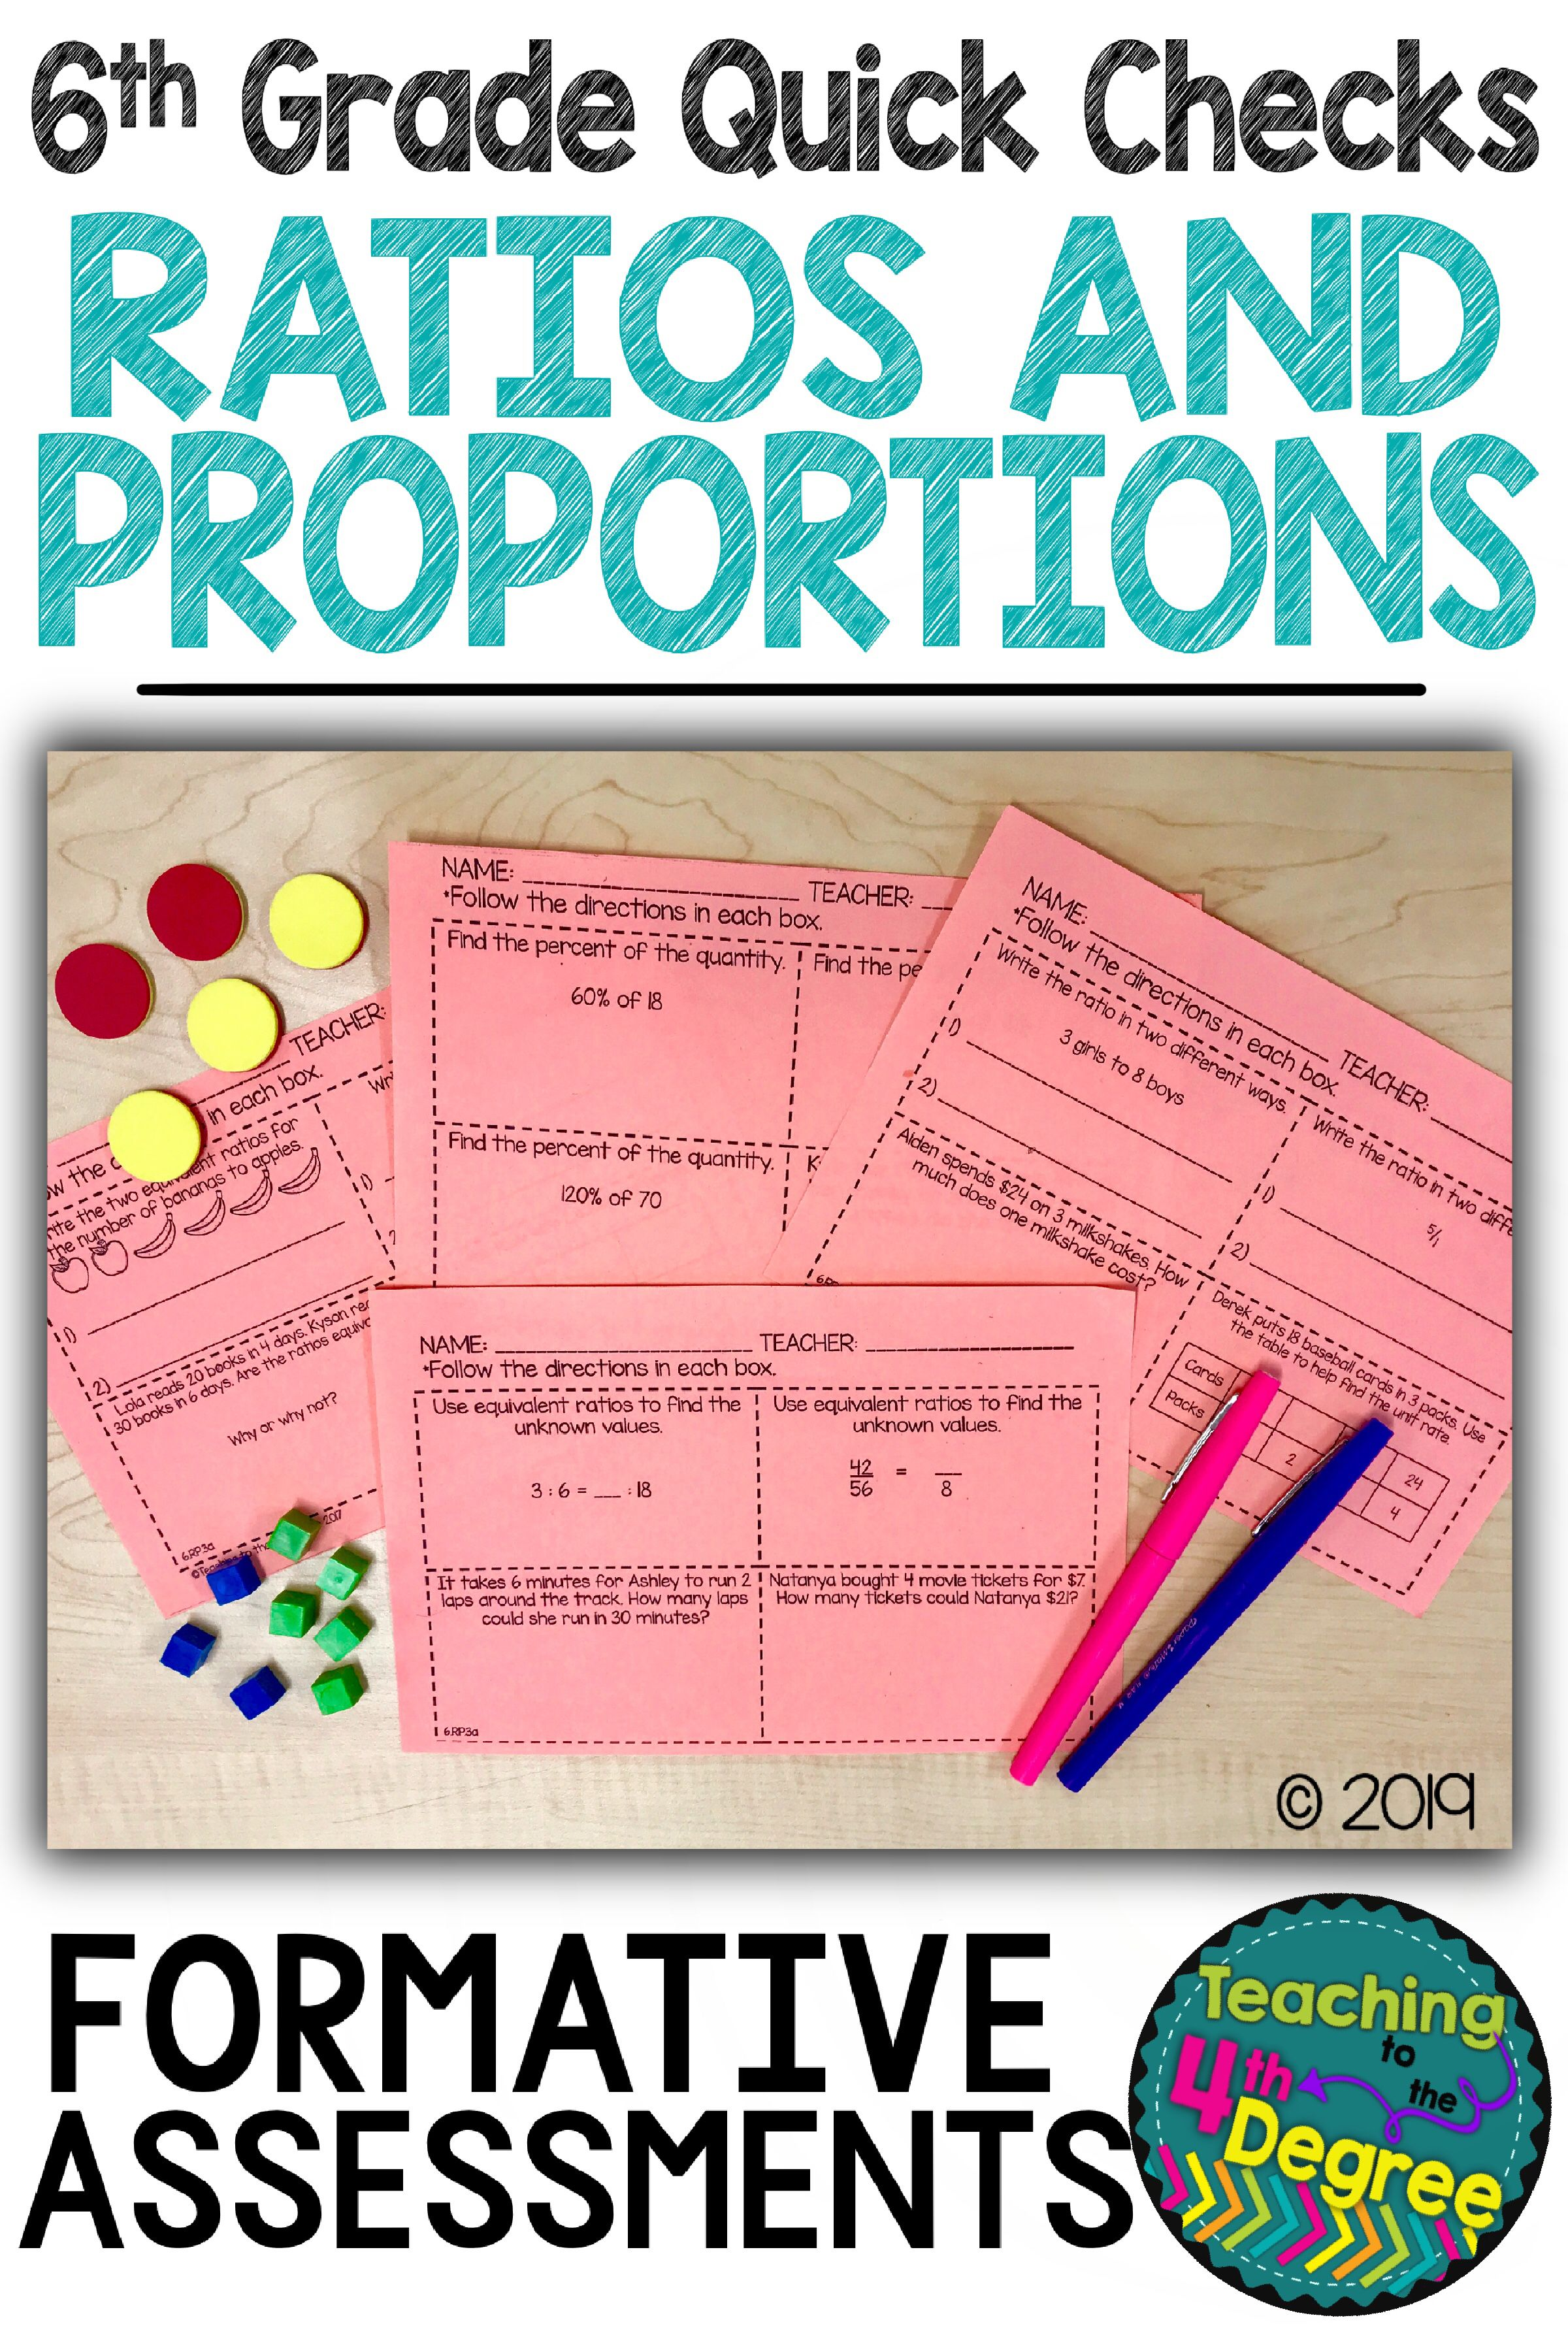 Ratios And Proportions Exit Tickets 6th Grade Digital And Printable Bundle Upper Elementary Math Math Ratios And Proportions